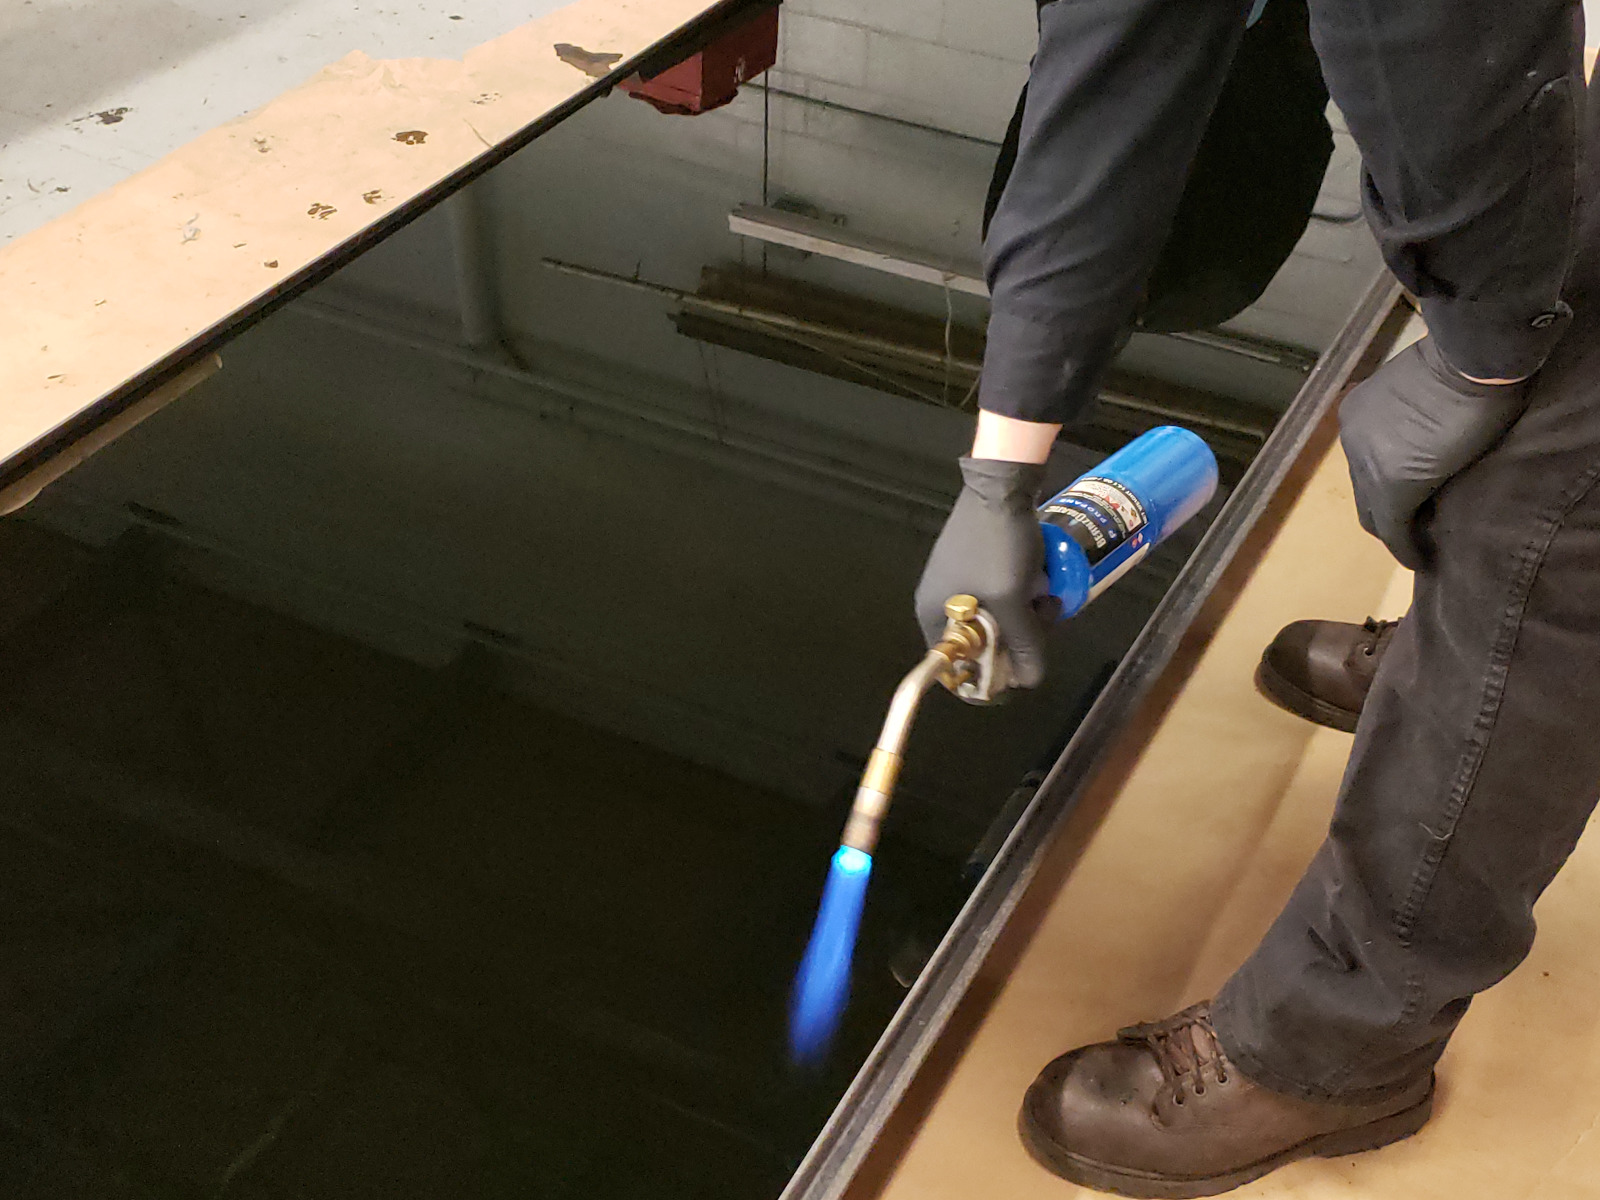 Technician utilizing torch to pop bubbles on epoxy surface.